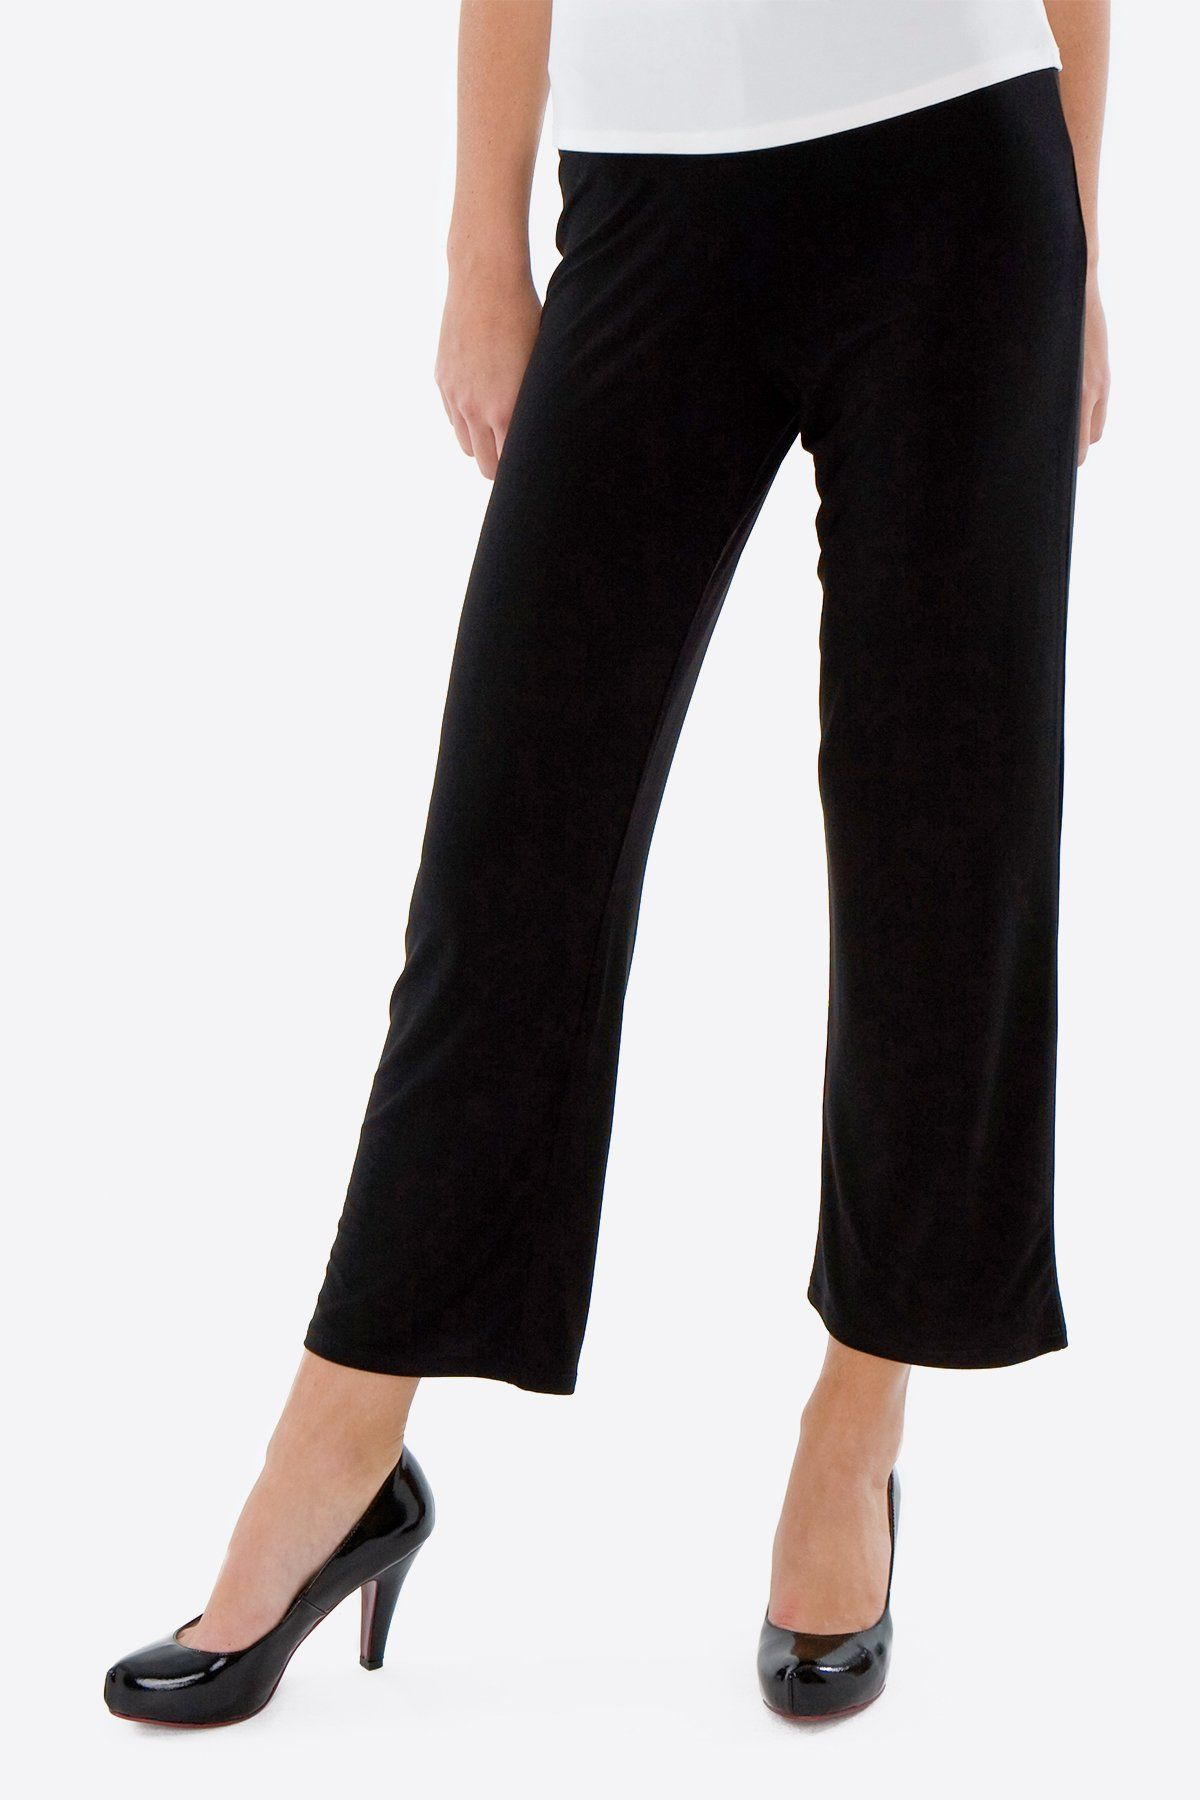 Women's Black 3/4 Capri Pants Rosarini